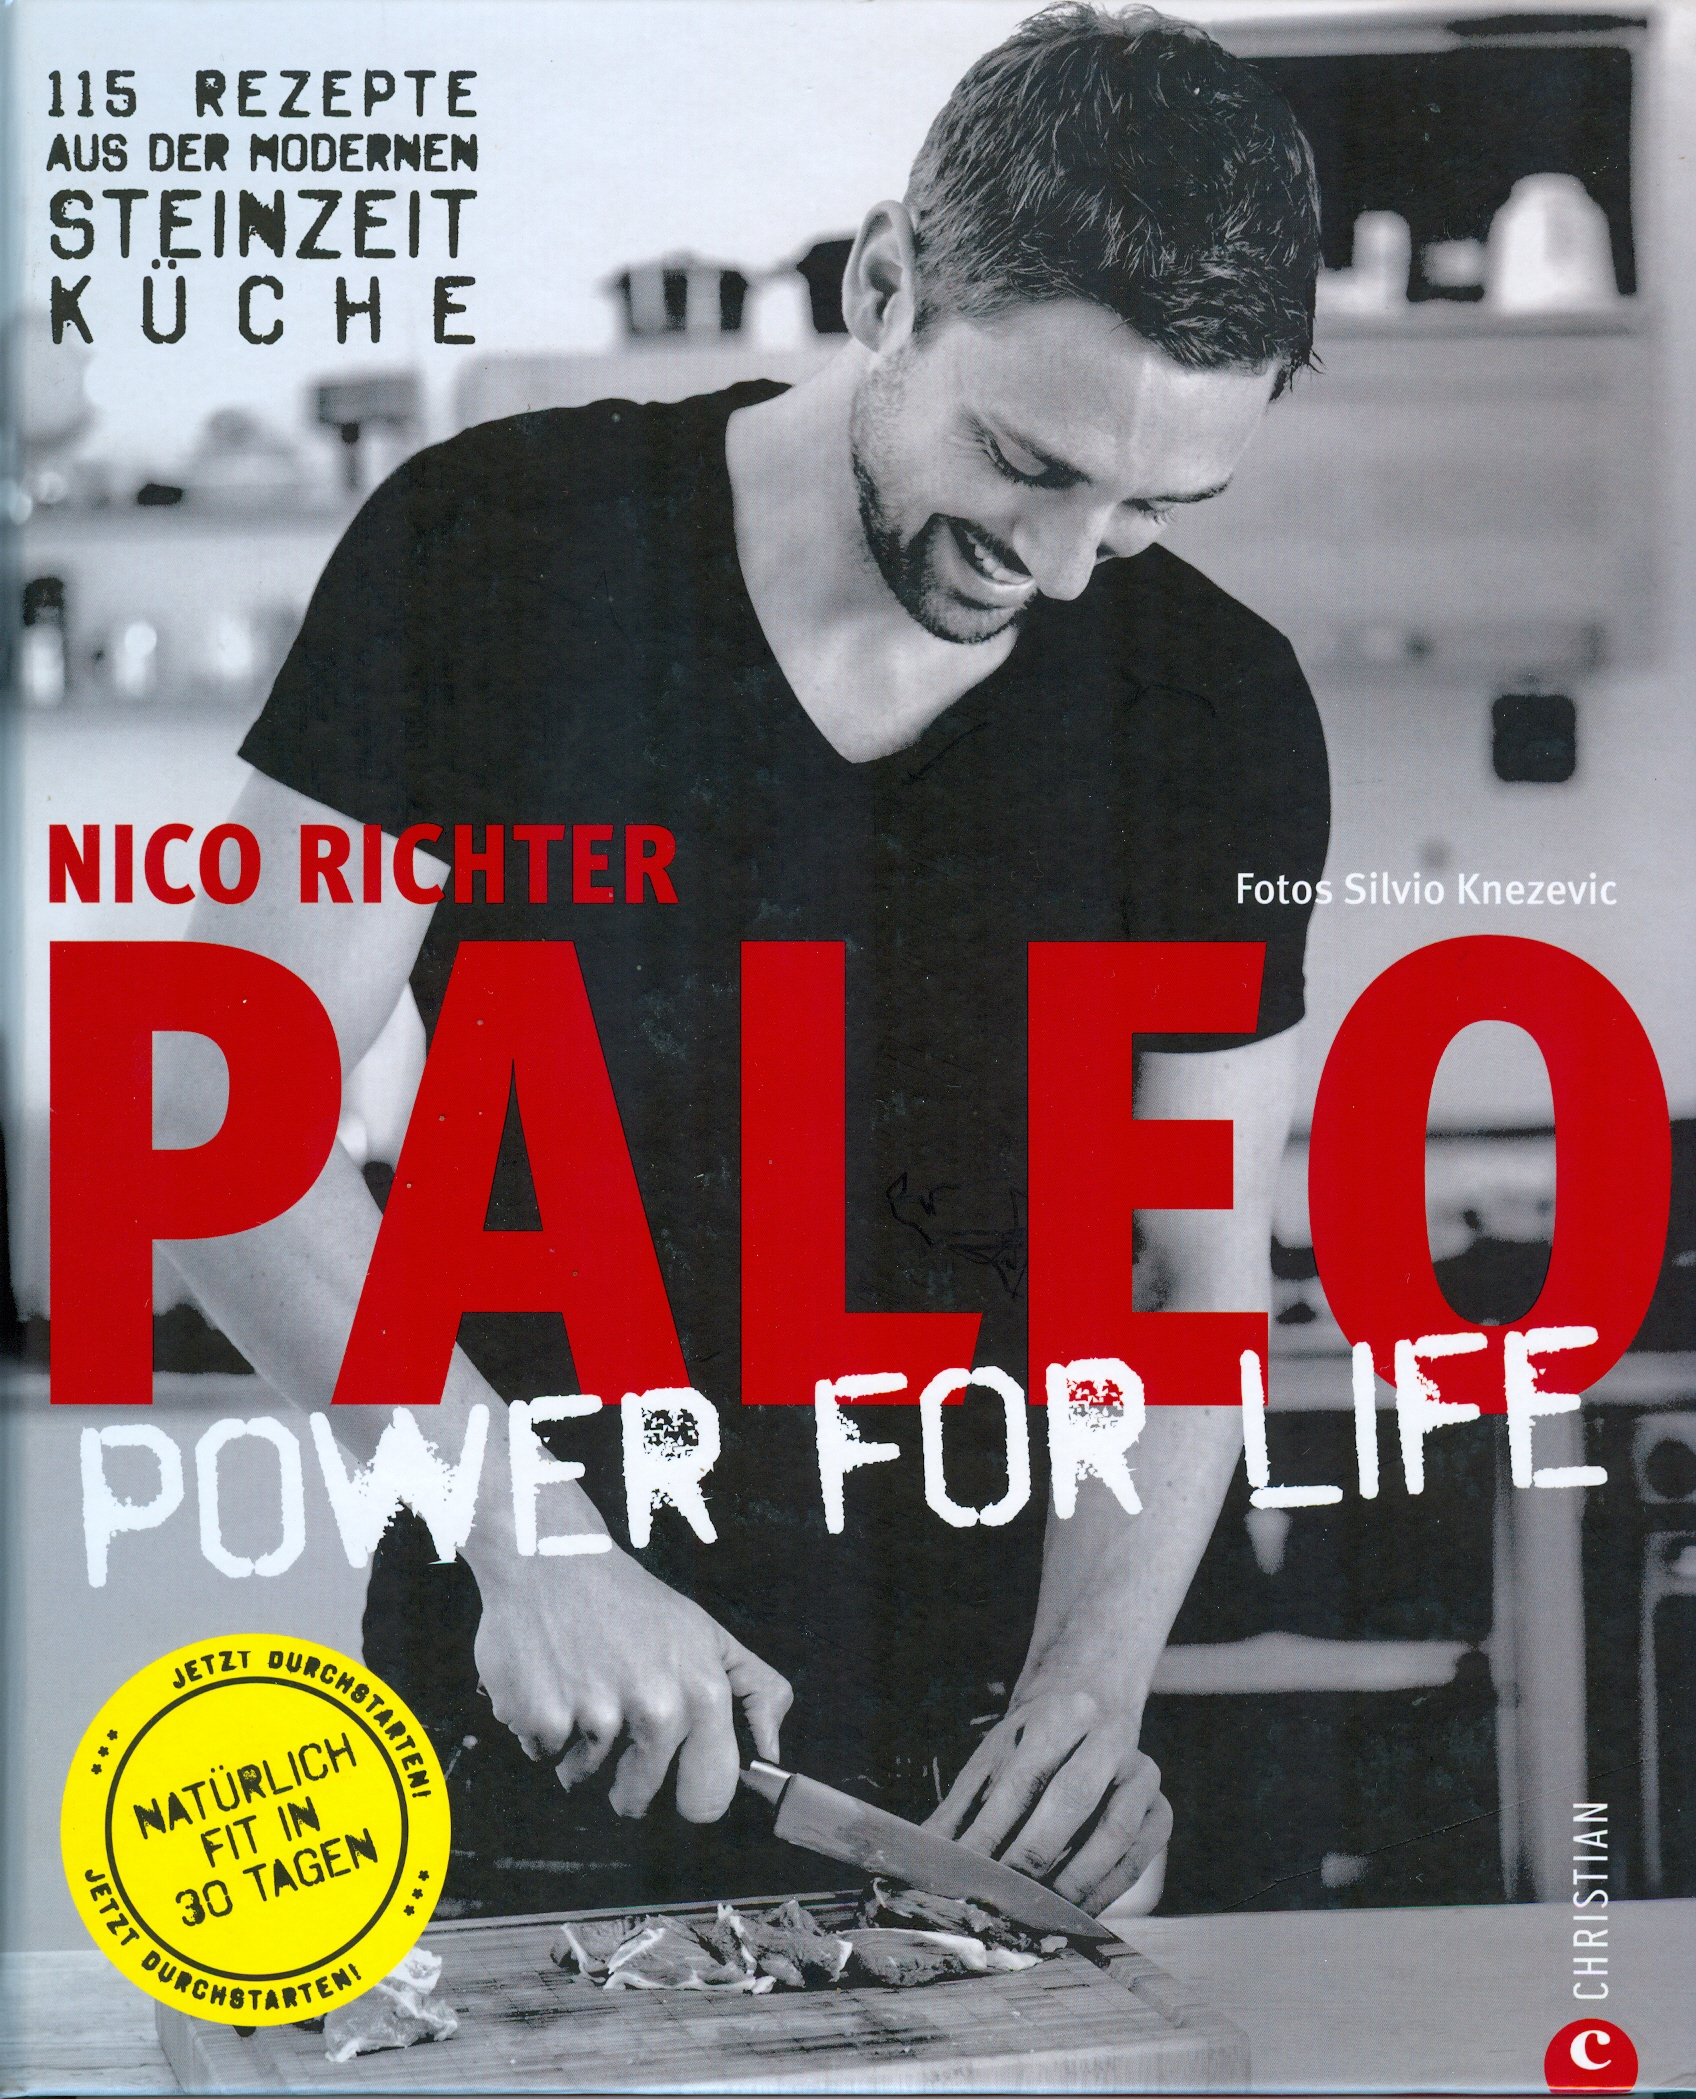 Paleo Küche Danielle Walker Paleo For Life Nico Richter BÜcher Naturesan Shop